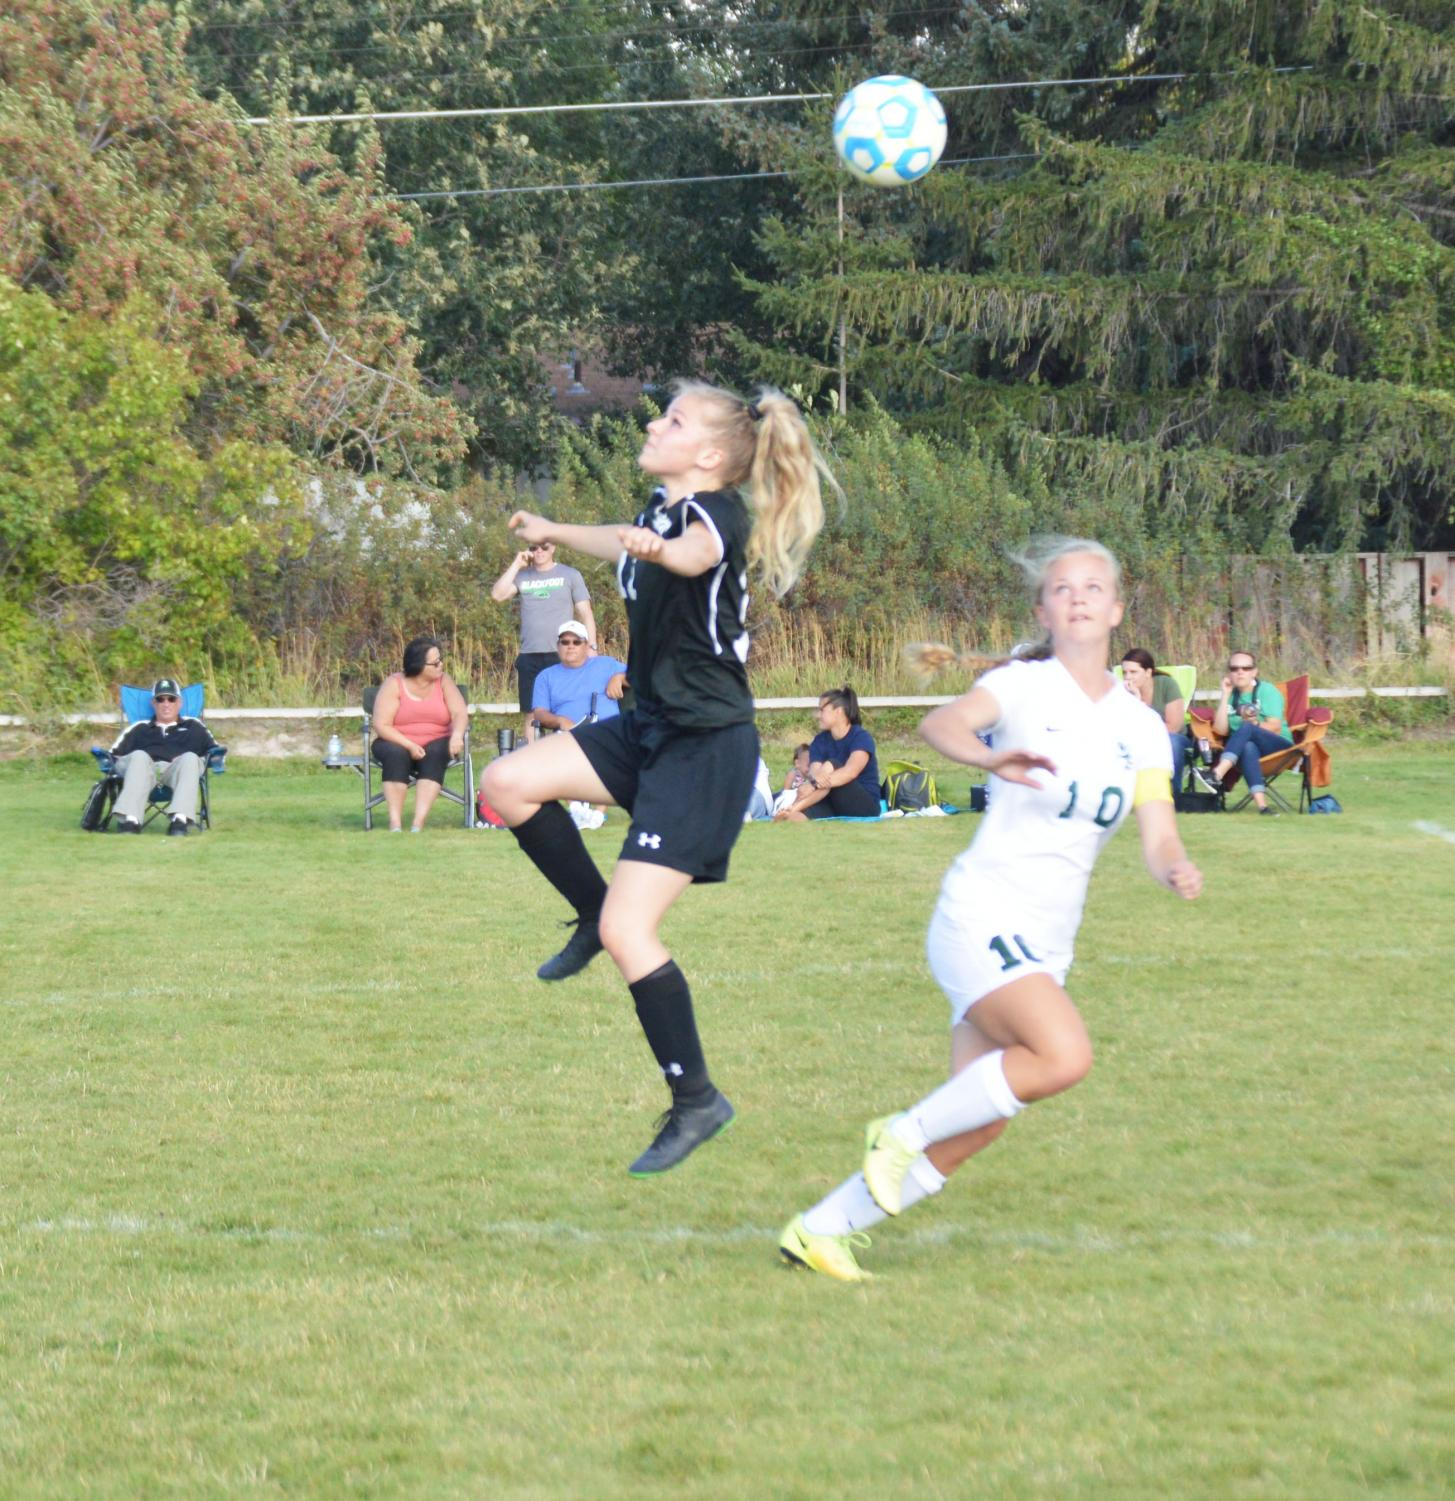 Kinsley Wray (12) headbutting the ball.